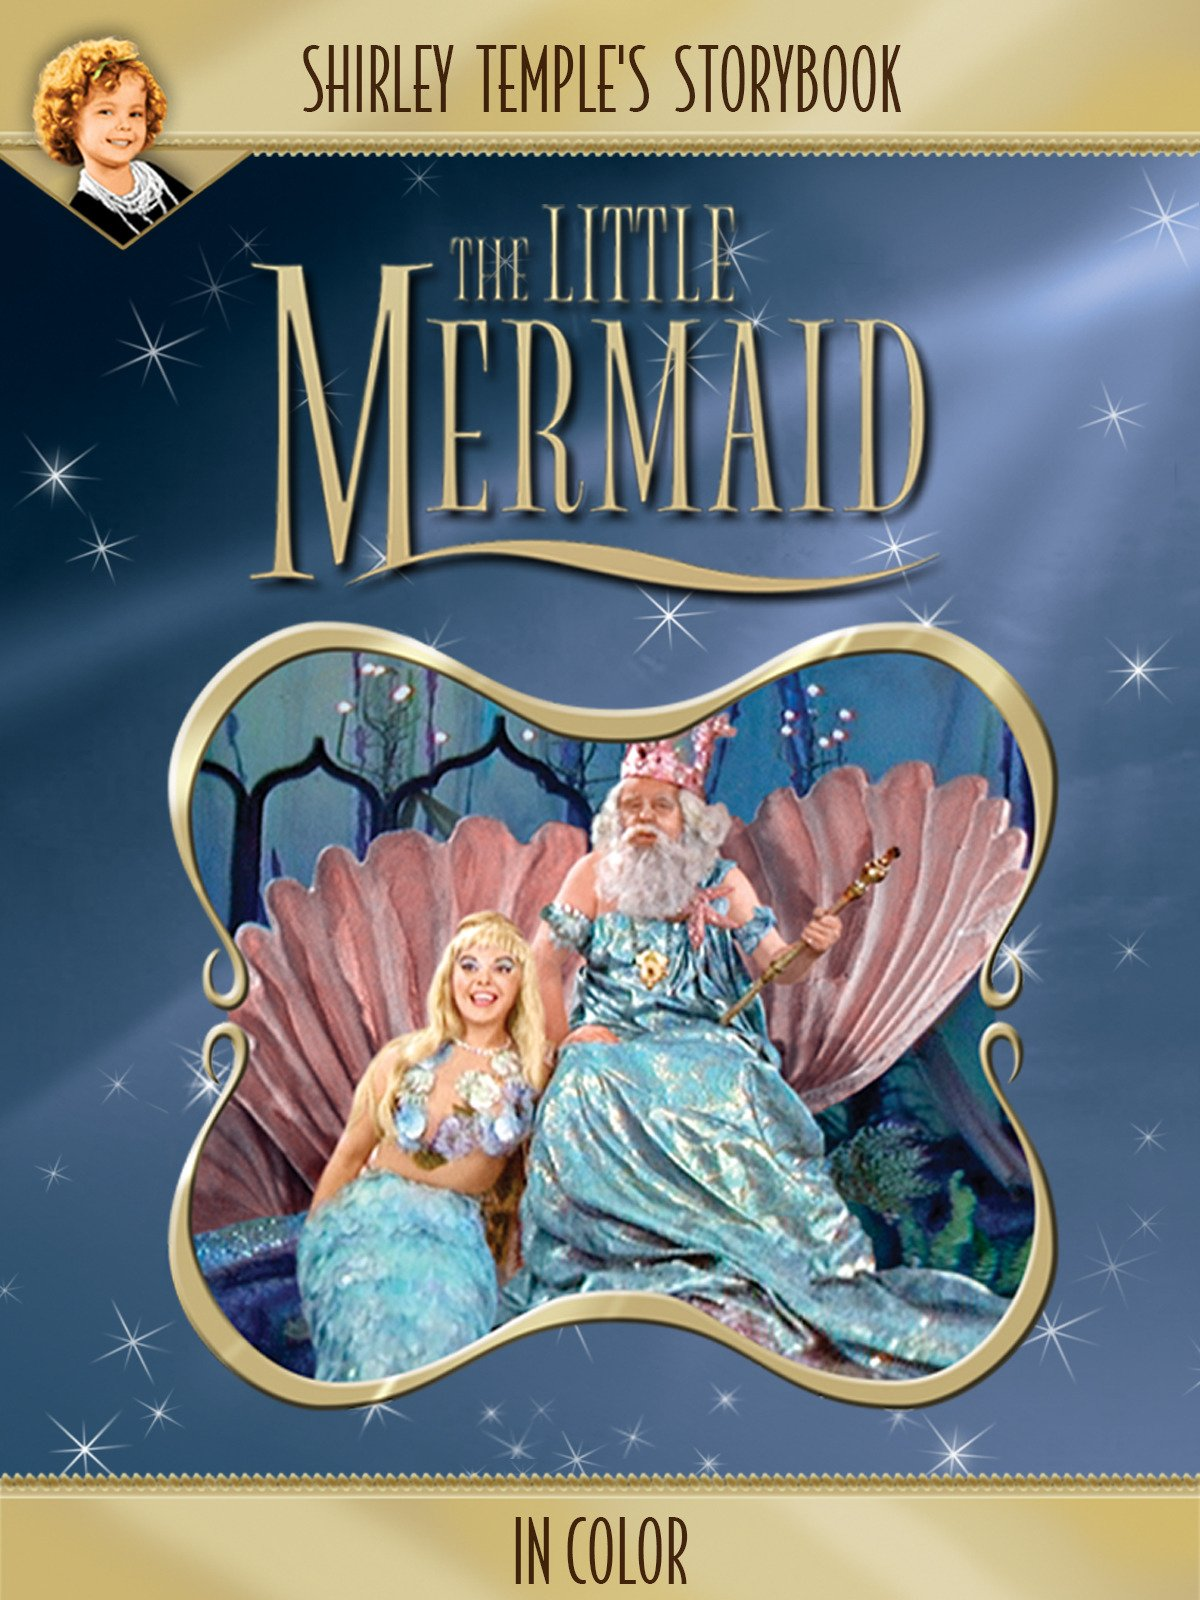 Shirley Temple's Storybook: The Little Mermaid (in Color) on Amazon Prime Instant Video UK